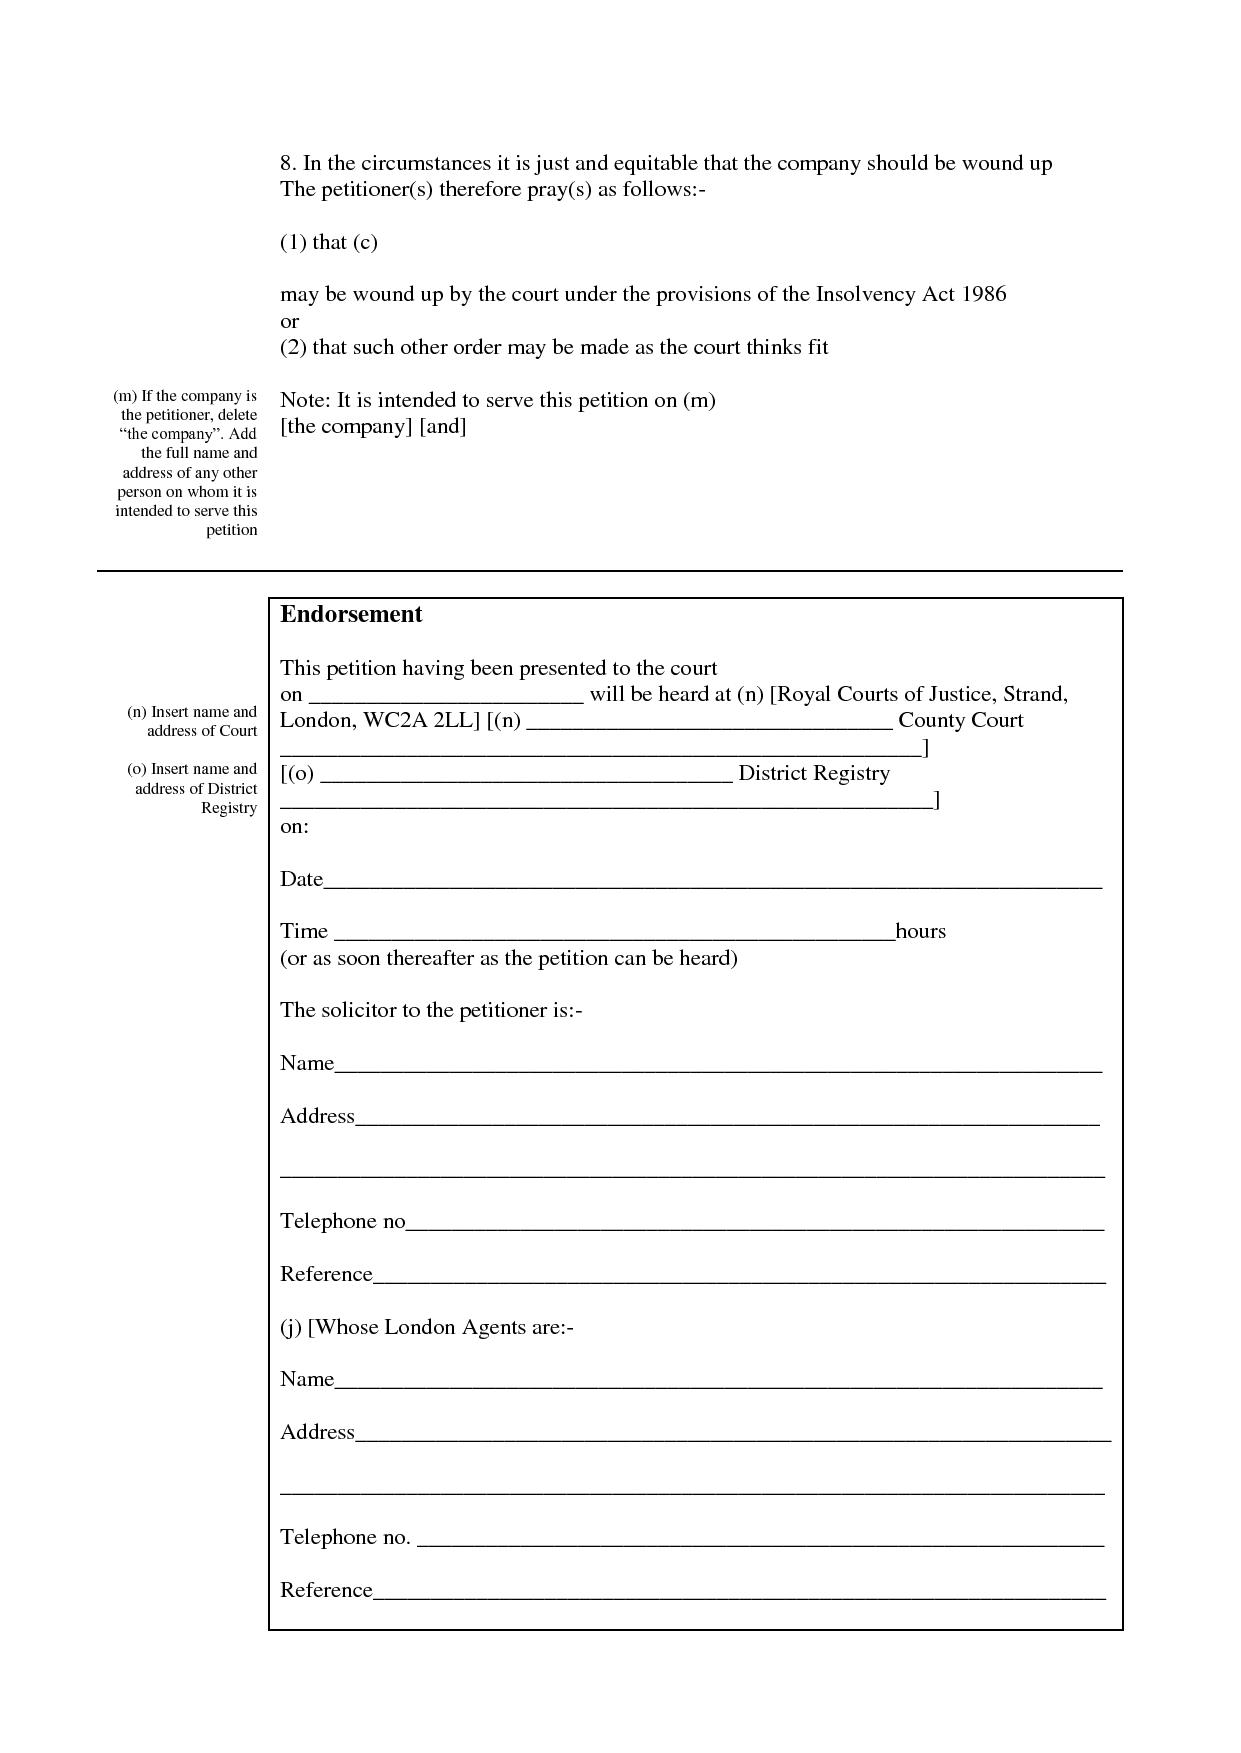 motion 4 templates free download - blank winding up petition form download in pdf or doc